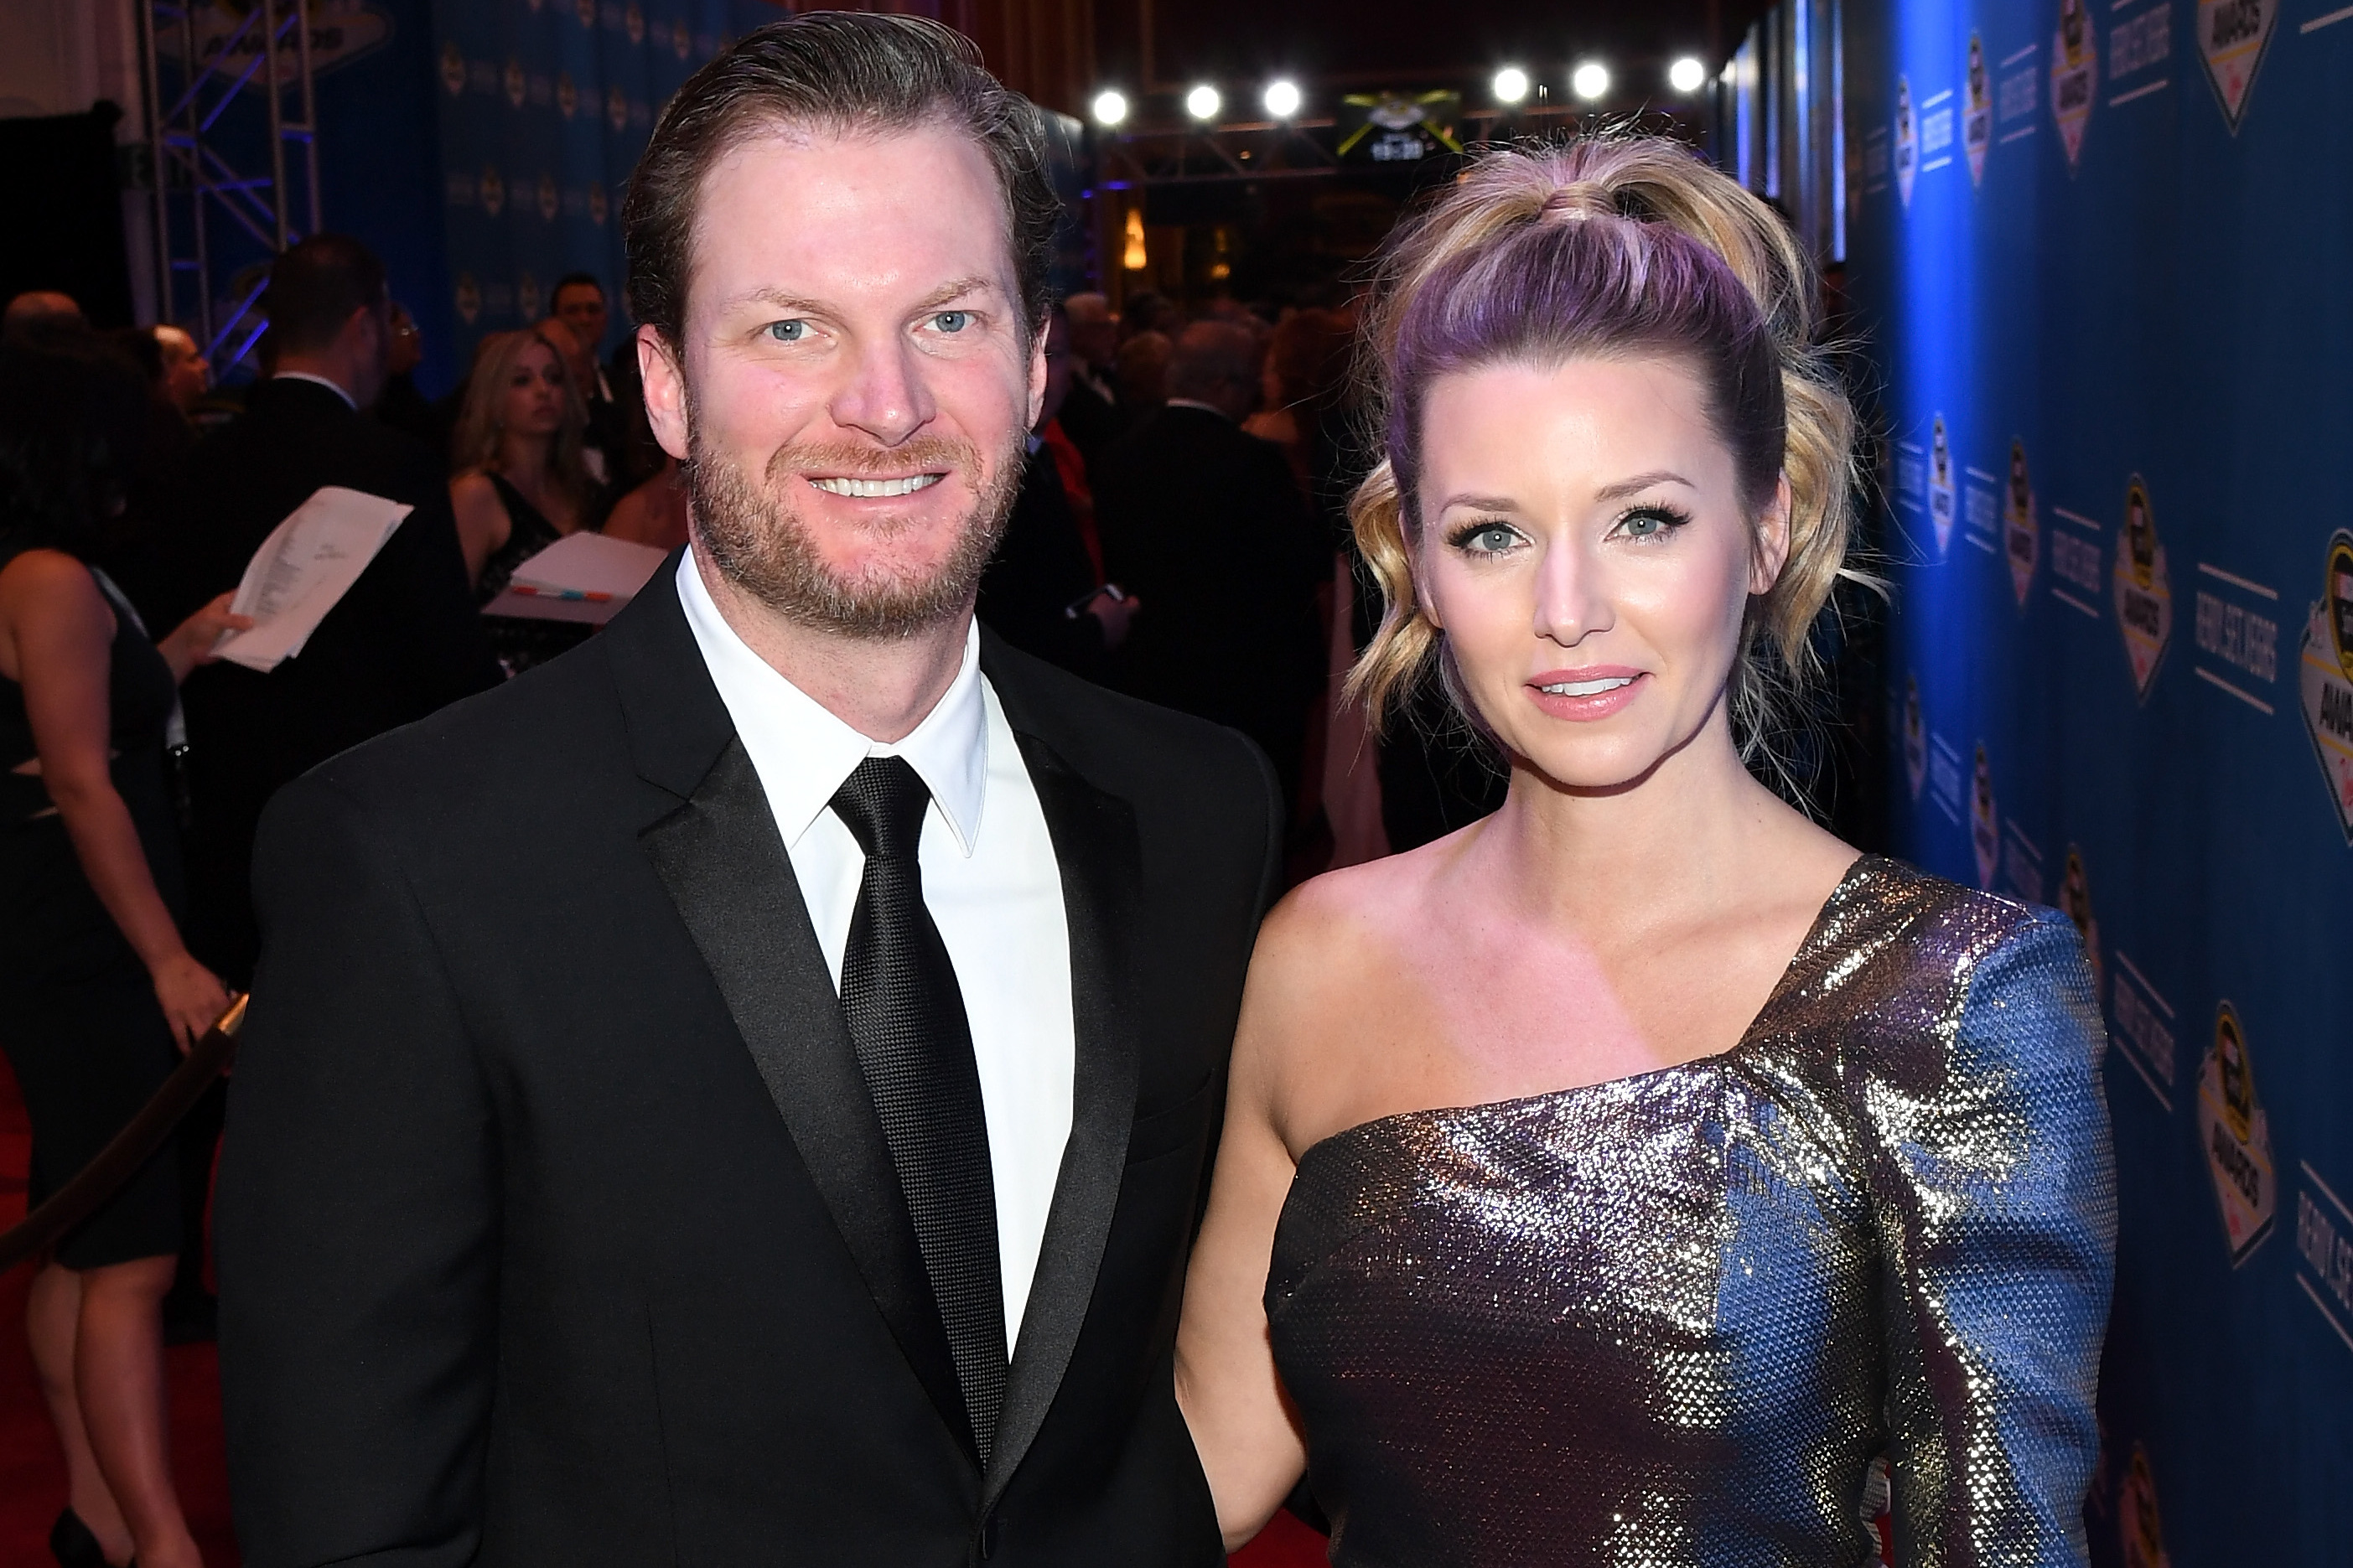 who is dale earnhardt jr dating now